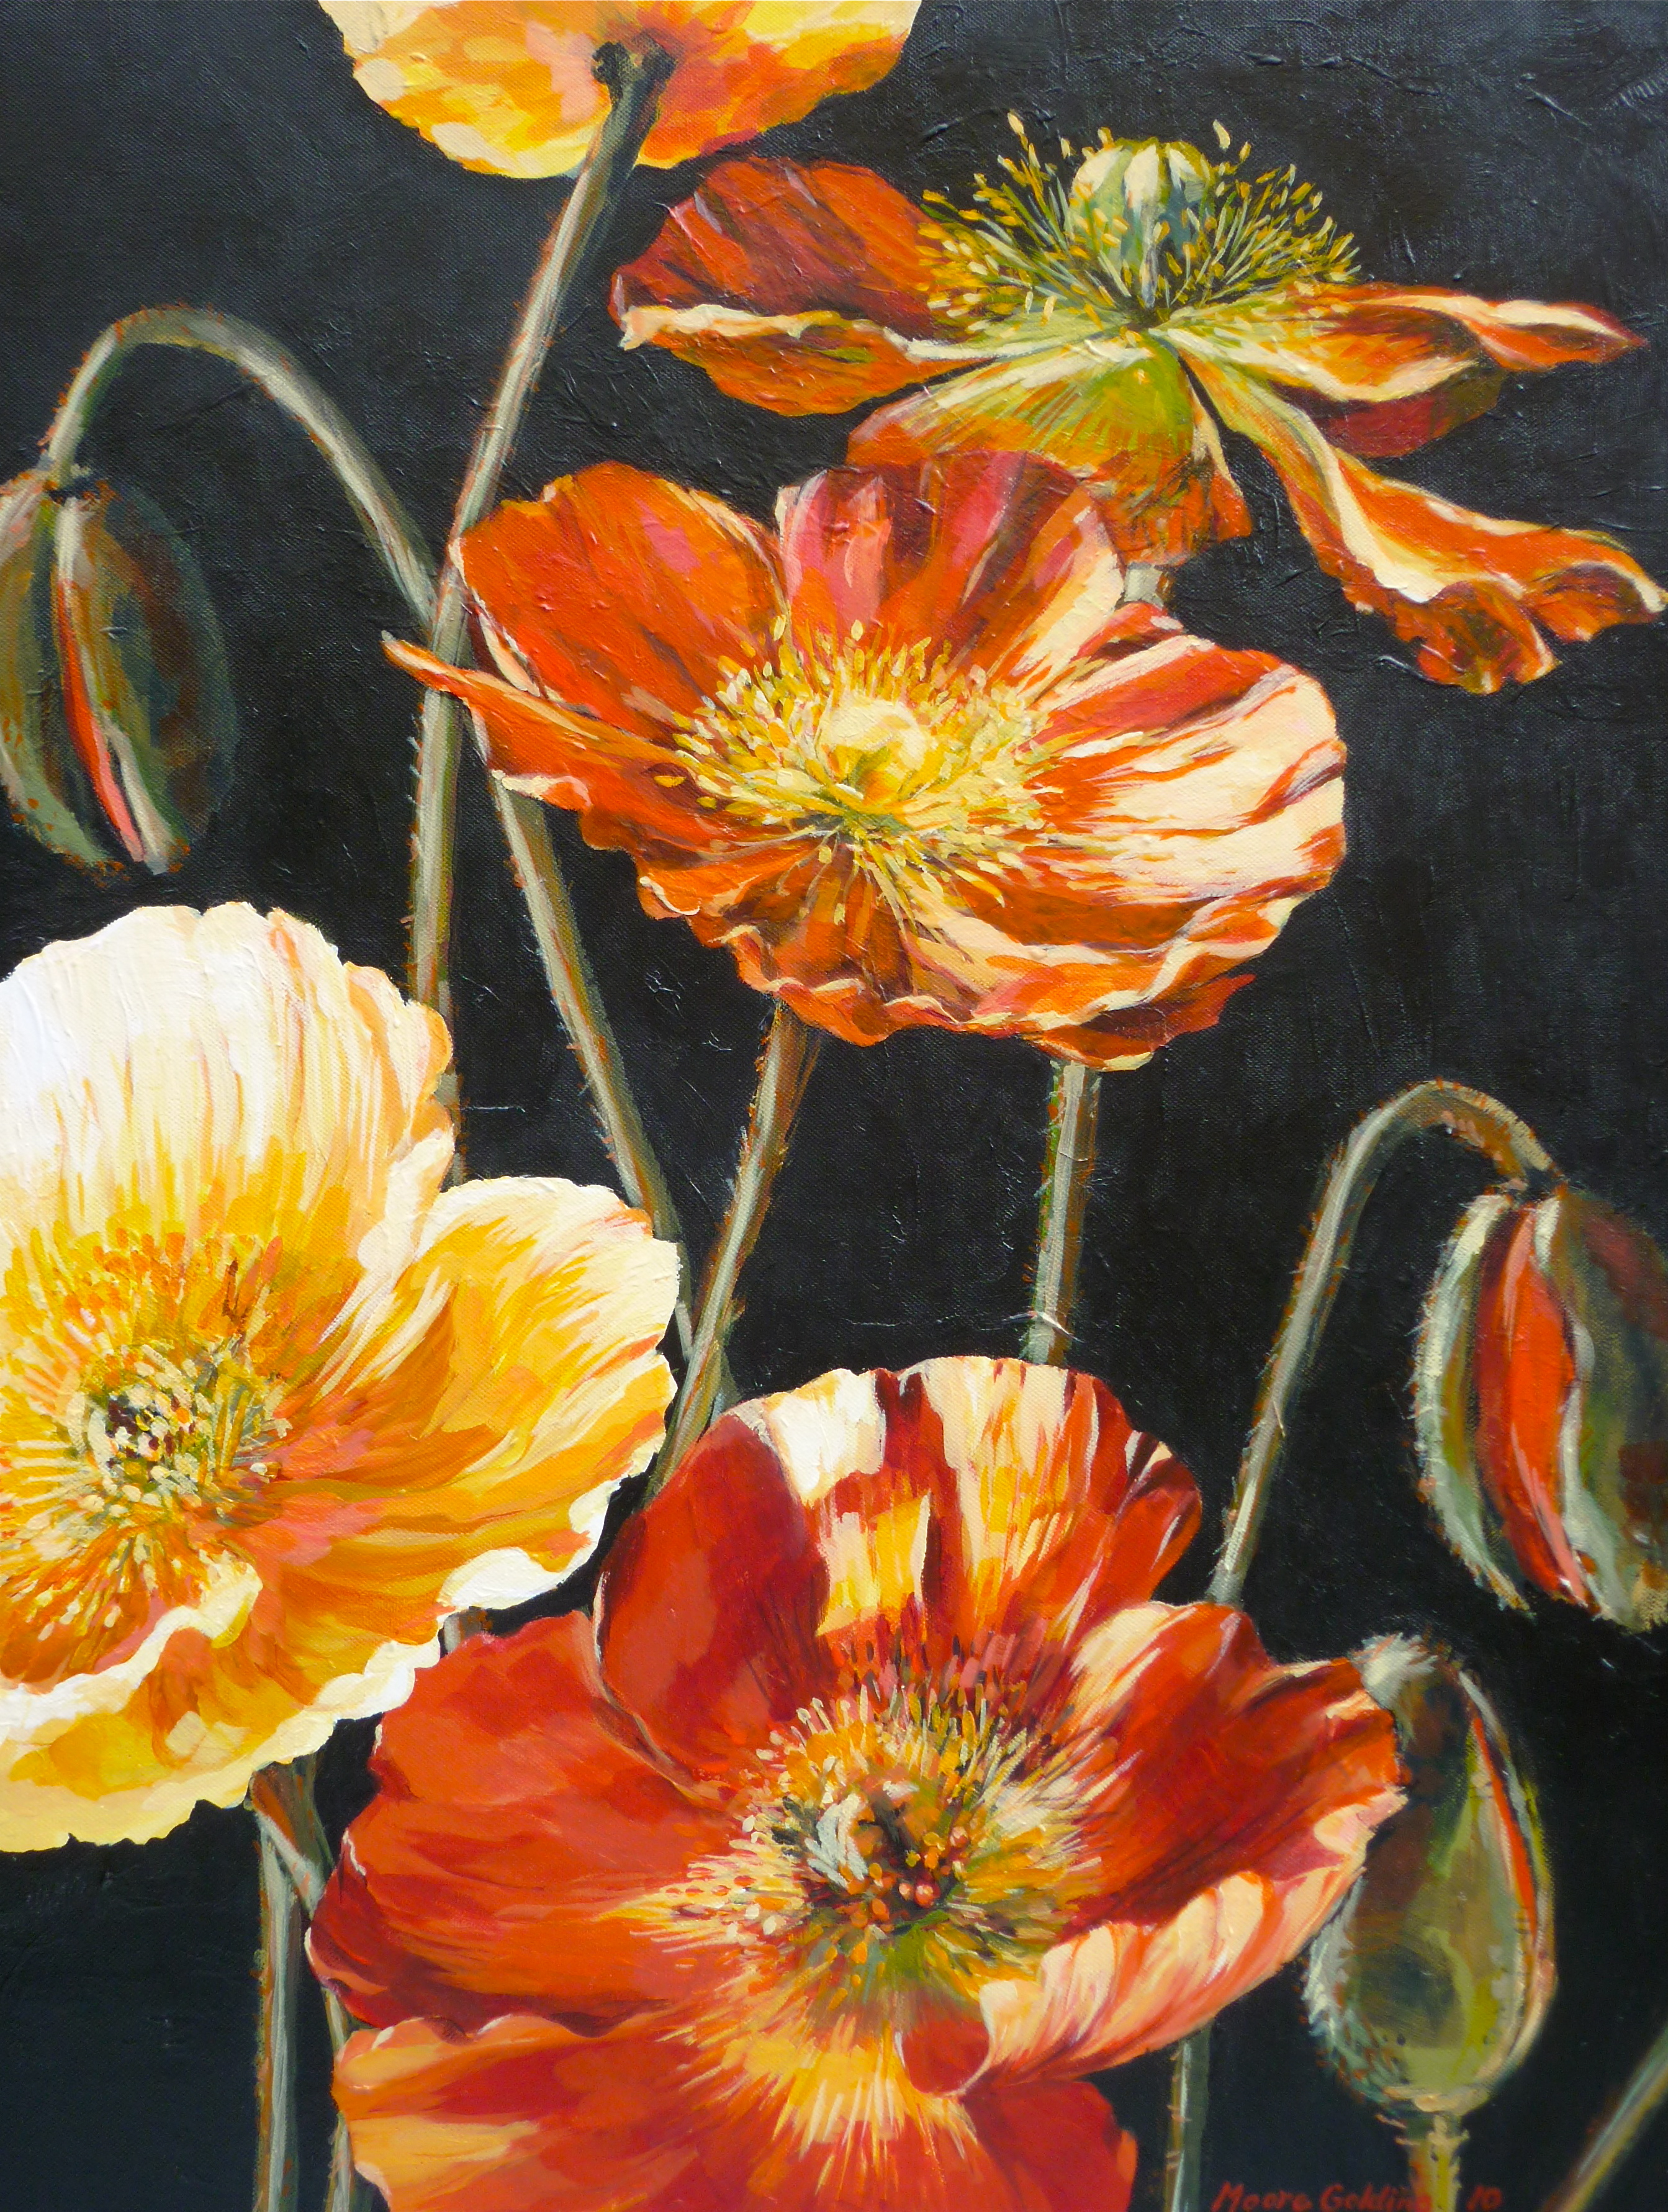 Iceland Poppies Poppies Too Acrylic On Canvas 76x61x4cms 2010